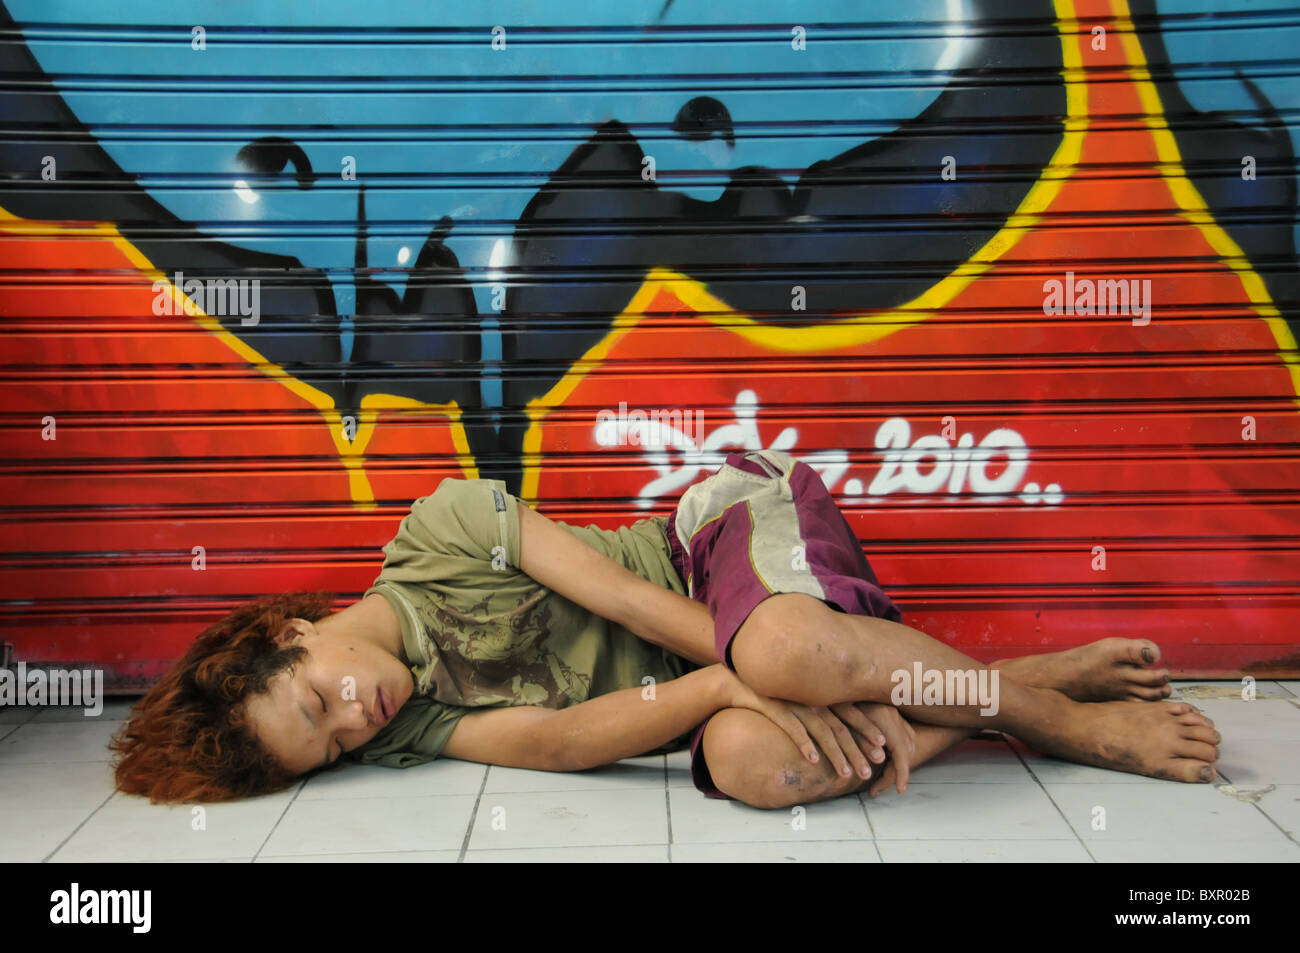 poor boy is sleeping stockfotos poor boy is sleeping bilder alamy. Black Bedroom Furniture Sets. Home Design Ideas